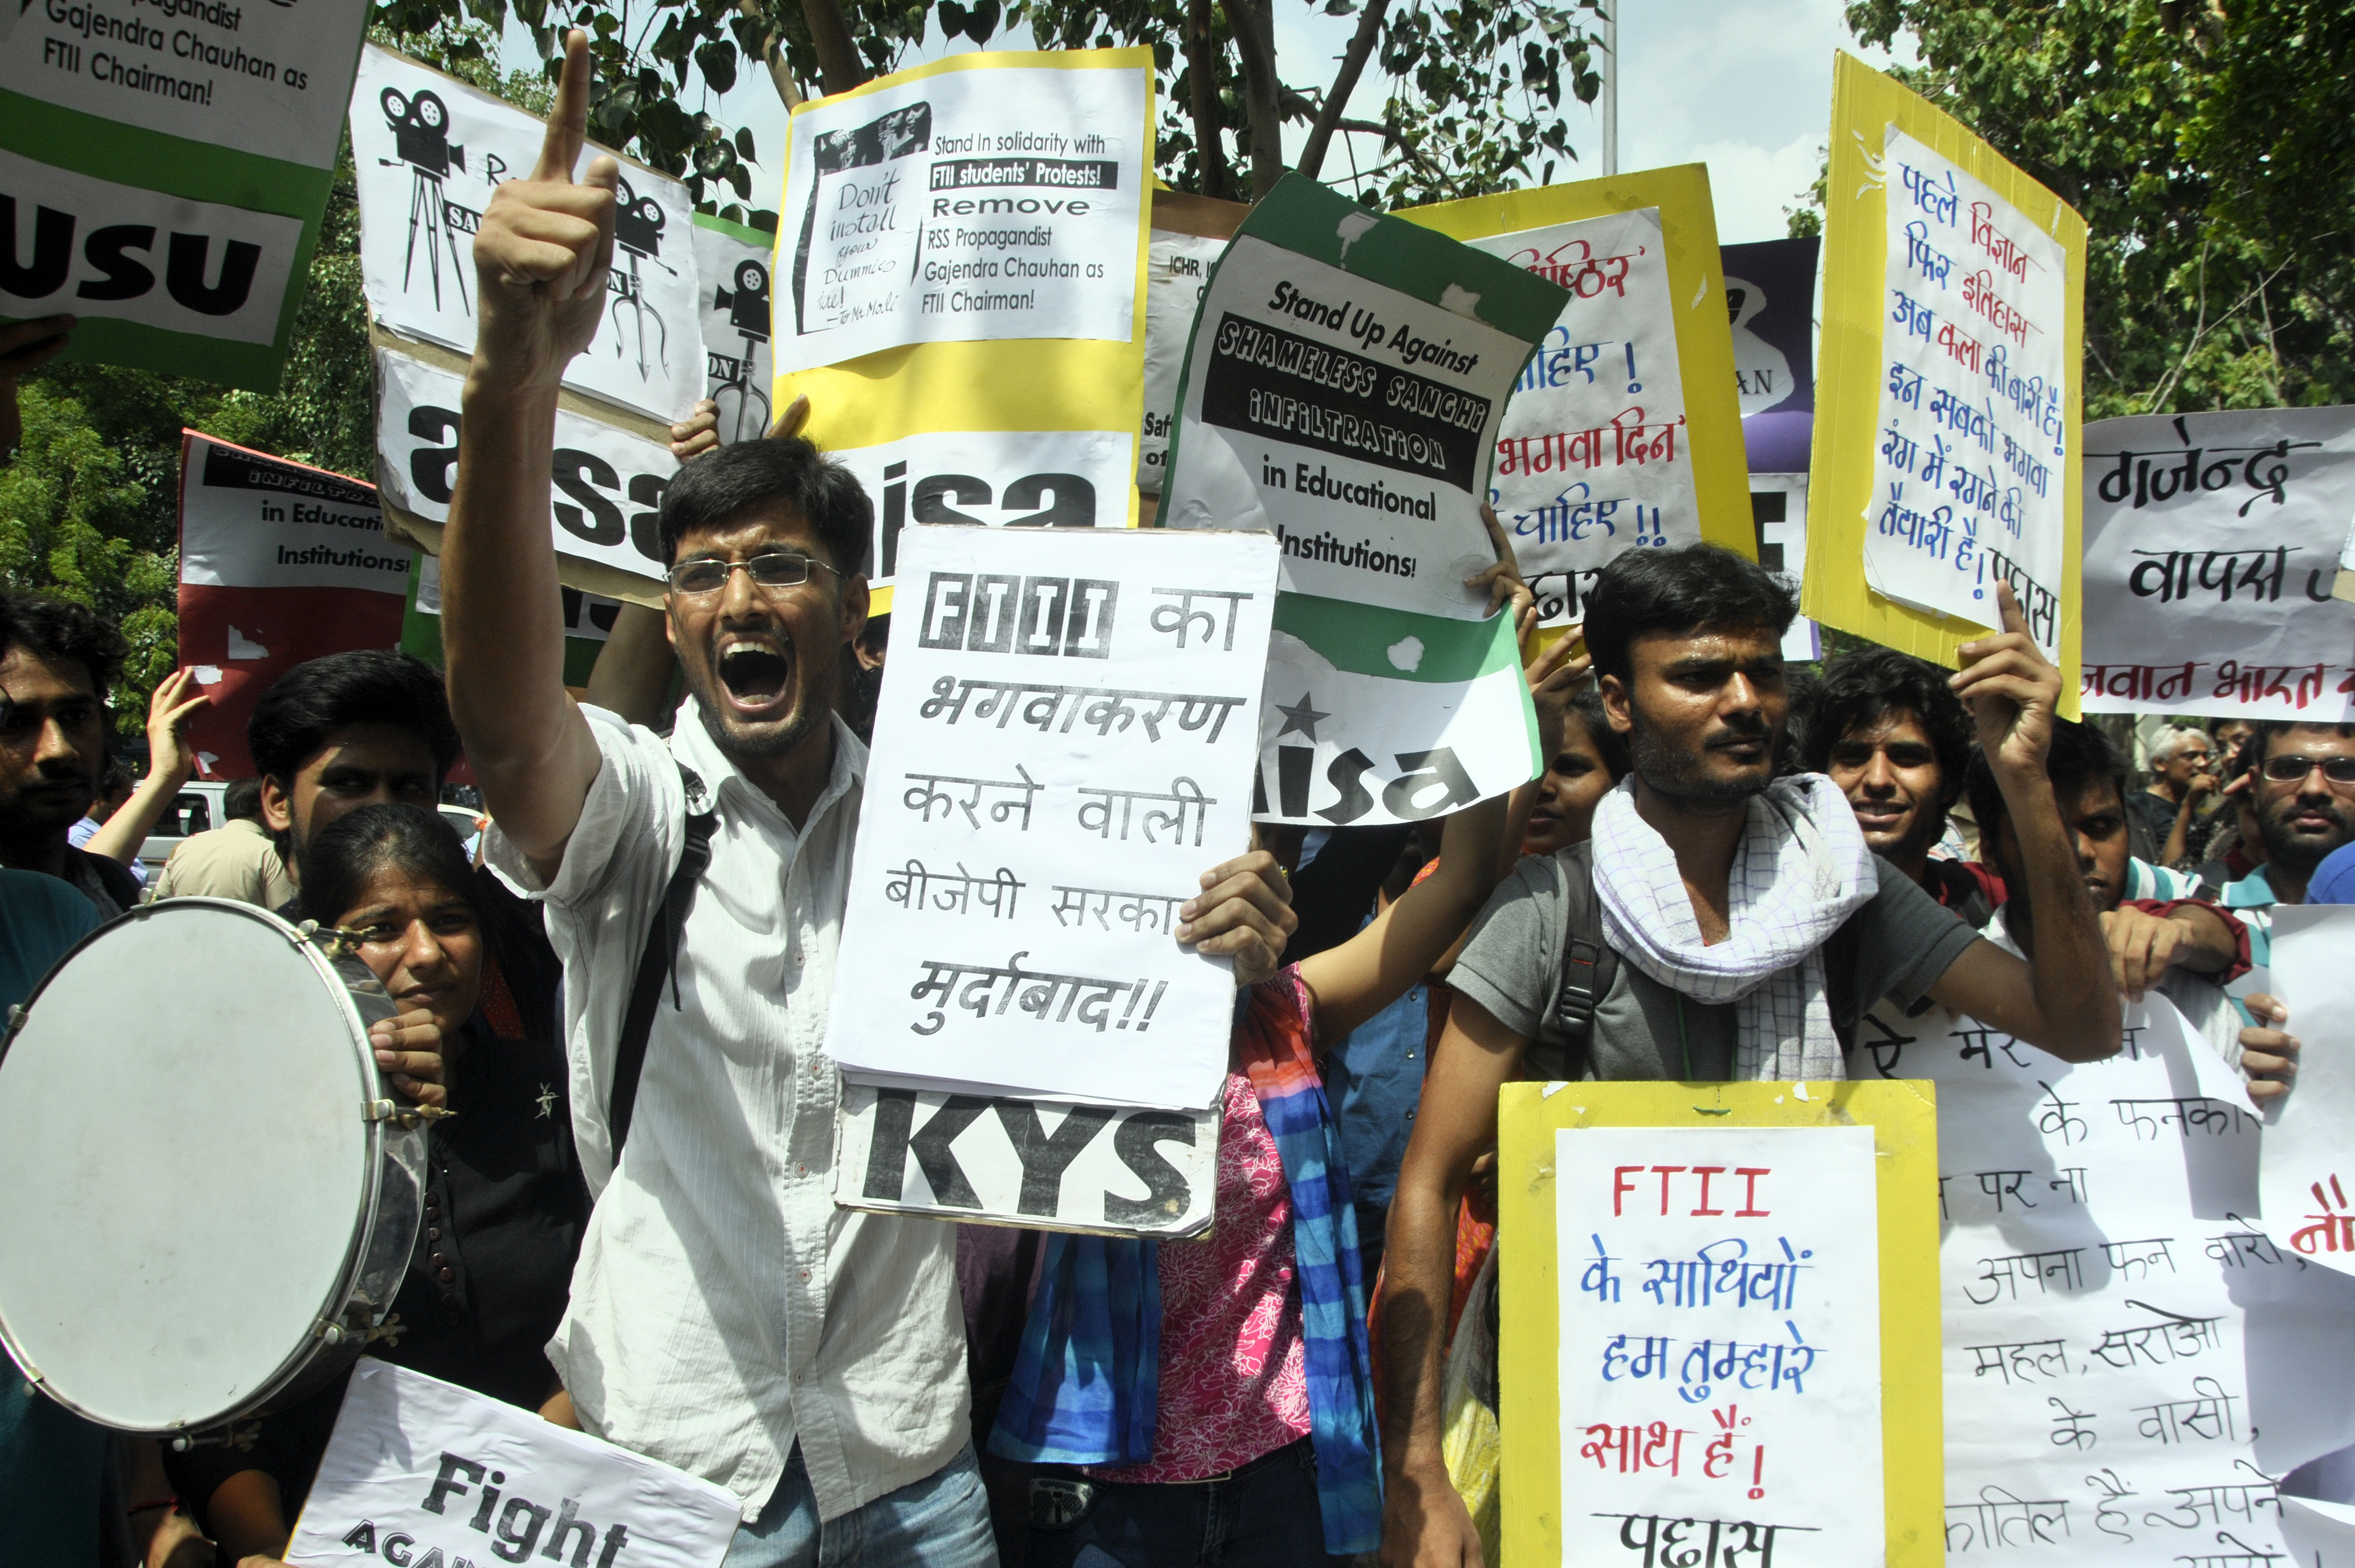 NEW DELHI,INDIA JULY 03: Students shout slogans at a protest against the appointment of Gajendra Chauhan as the chairman of the FTII governing council, in New Delhi.(Photo by Praveen Negi/India Today Group/Getty Images)